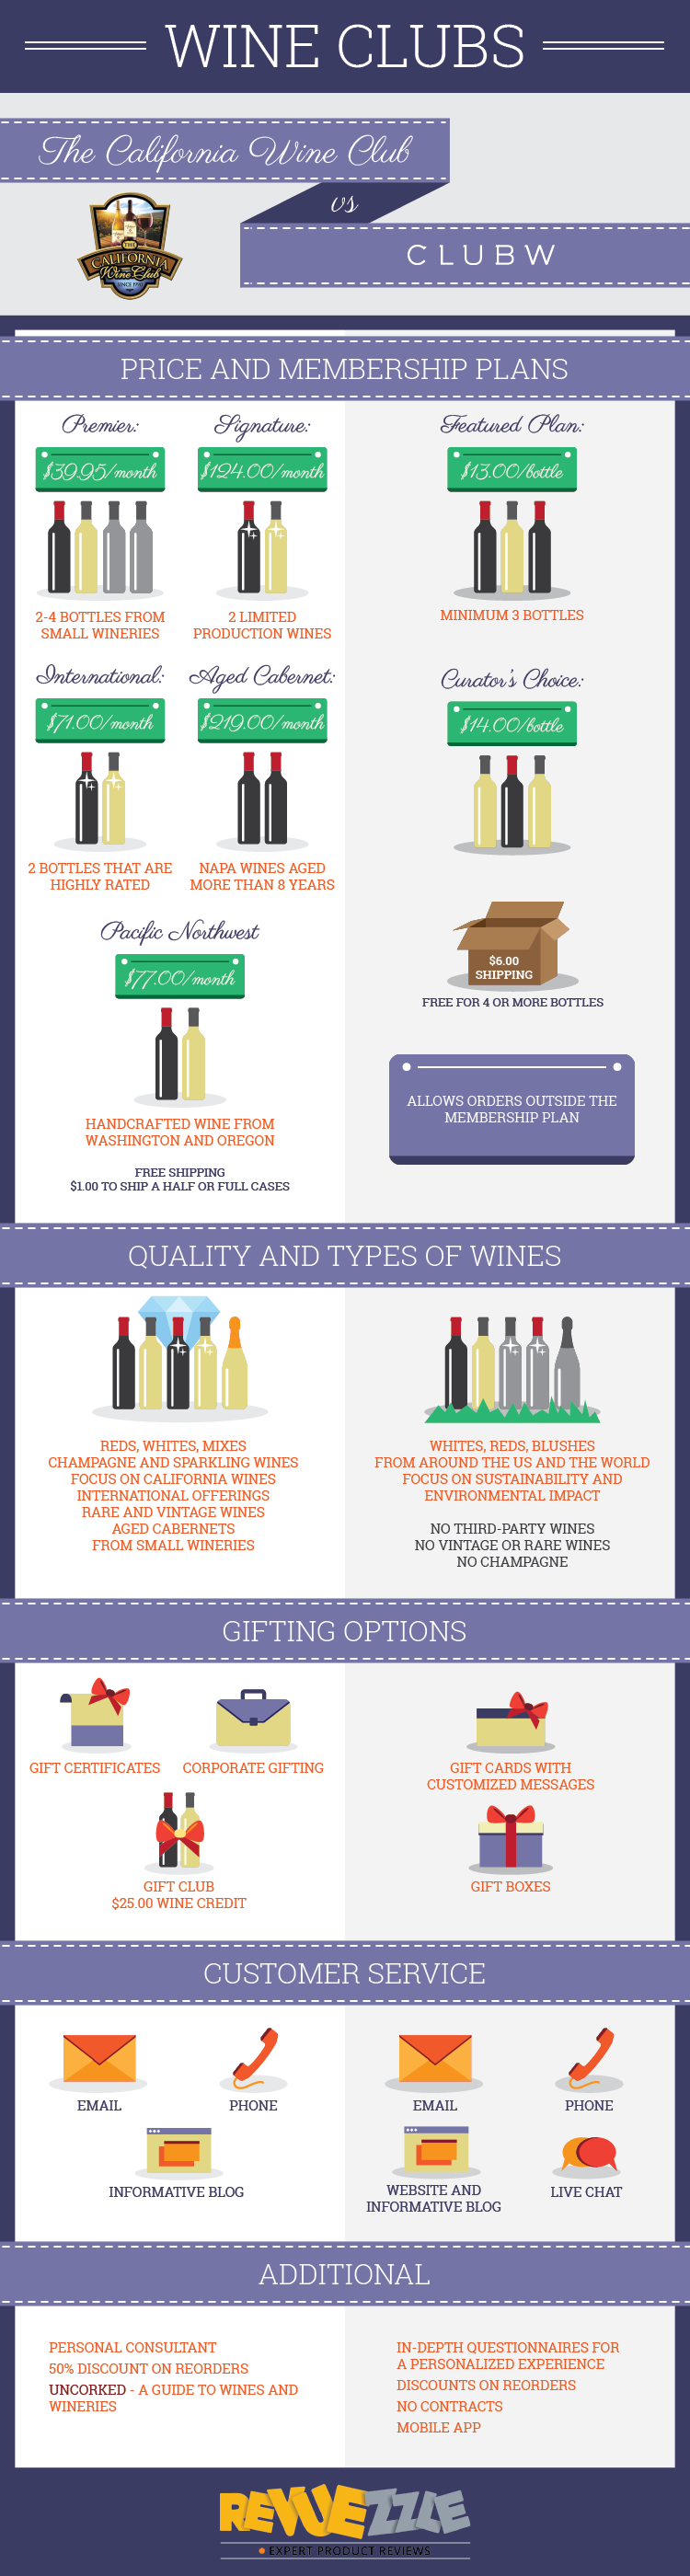 The California Wine Club vs. Club W Detailed one on one comparisions. #wine #vino #wineclubs  #infographic